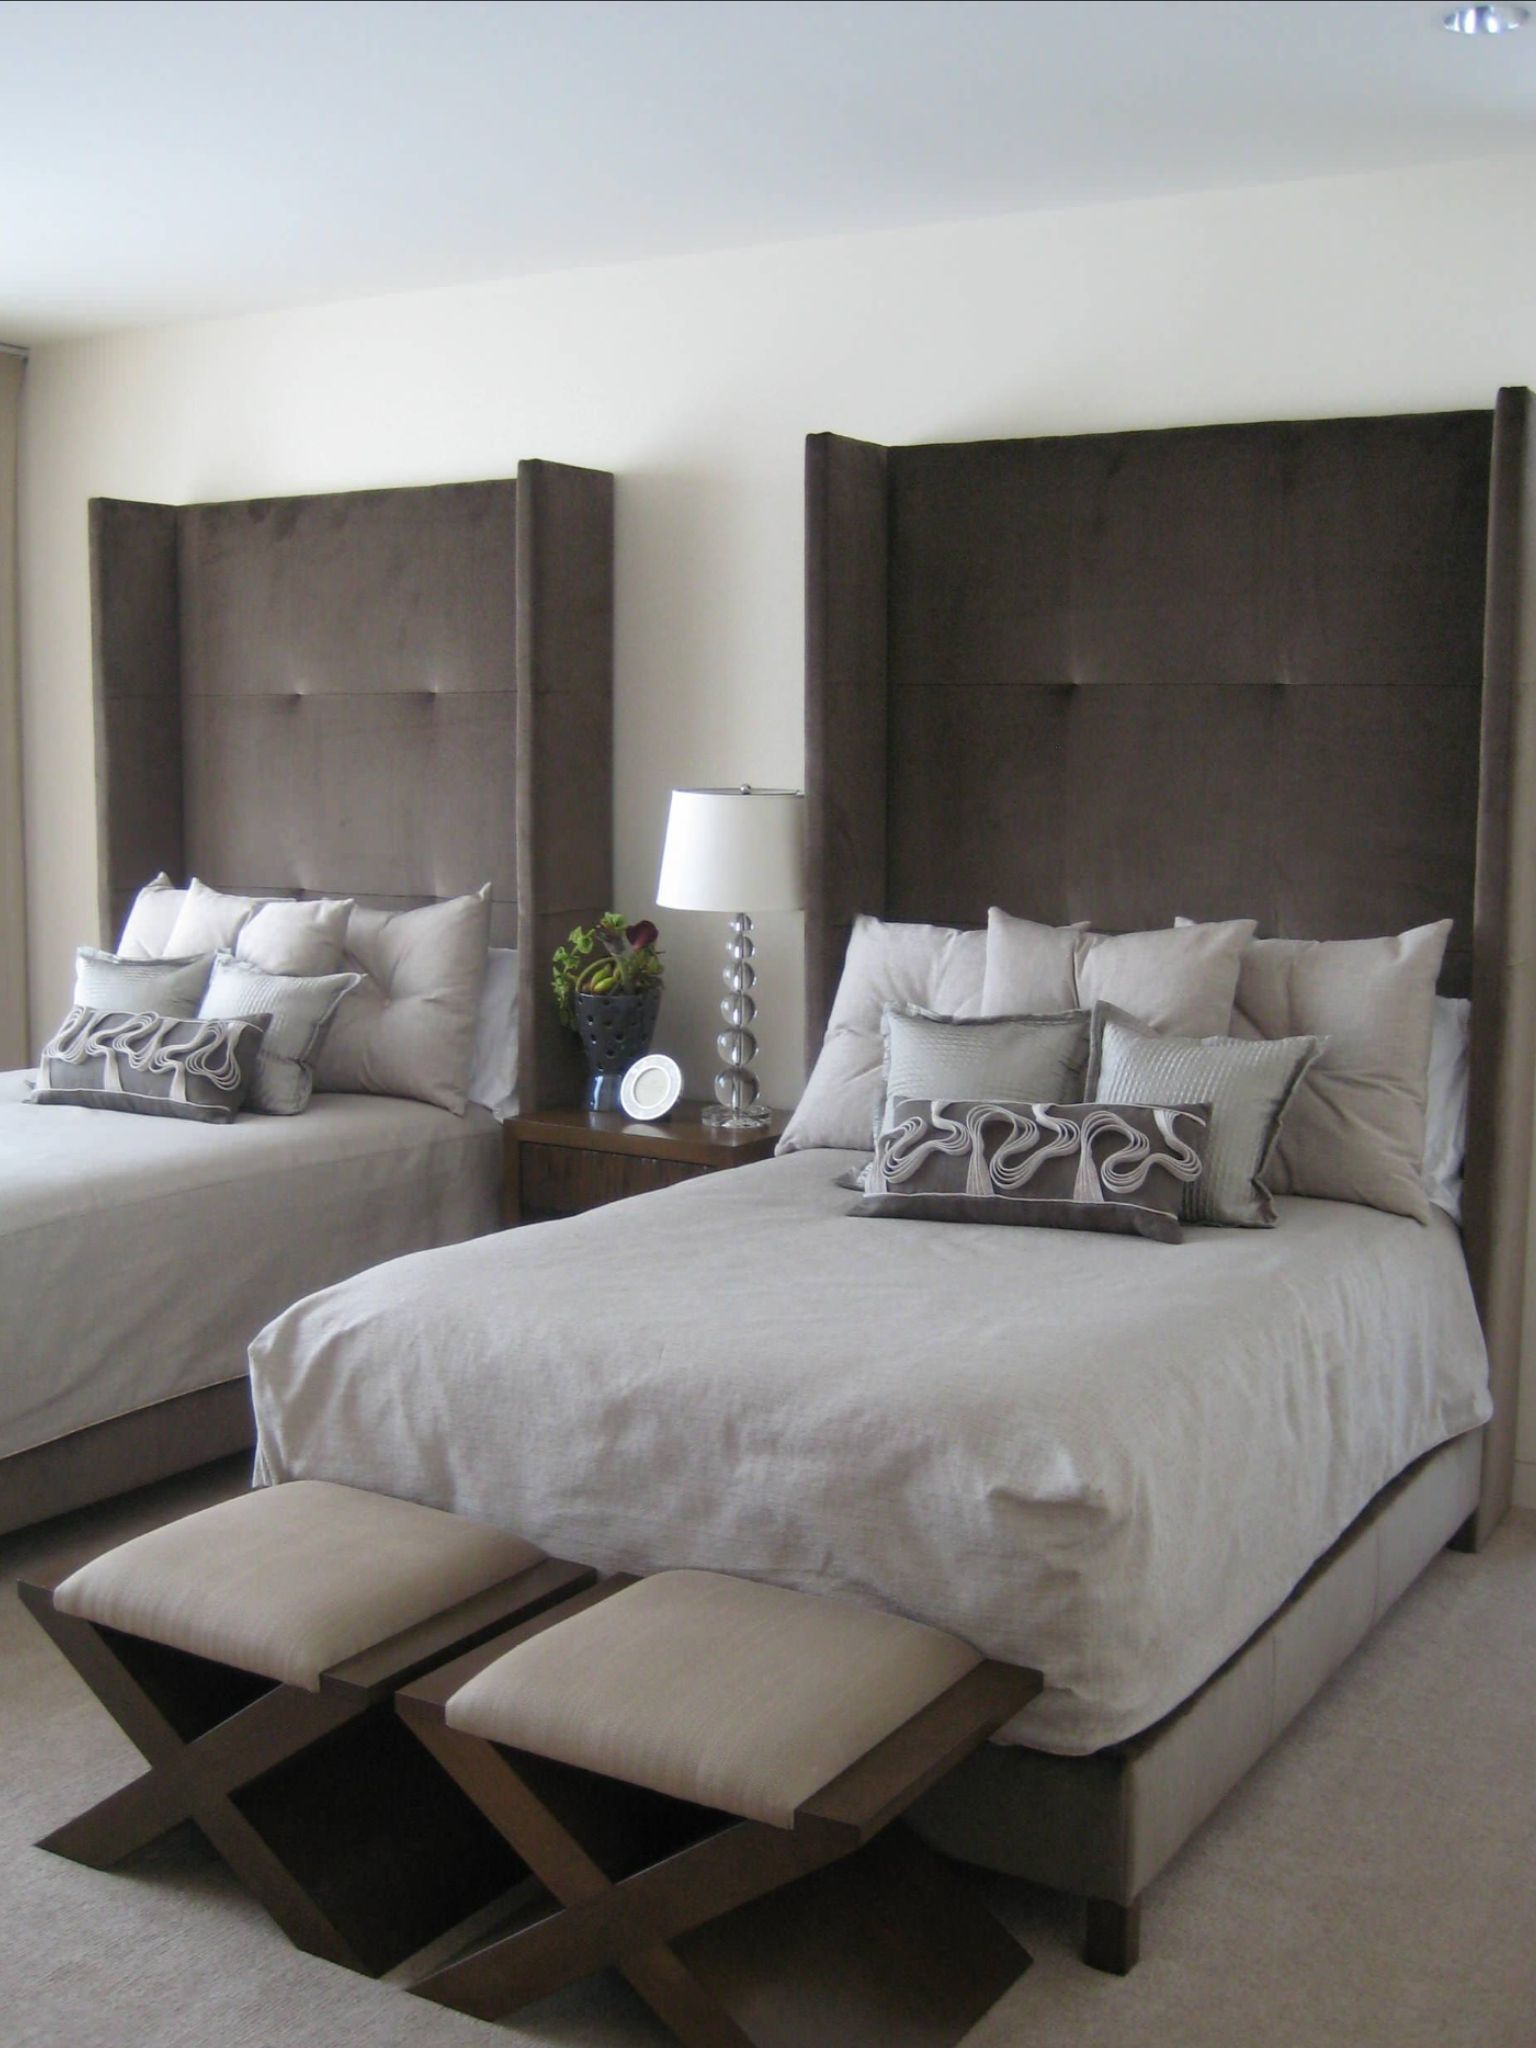 Twin Bed Hotel Room: Twin Beds And Headboards In Guest Room.